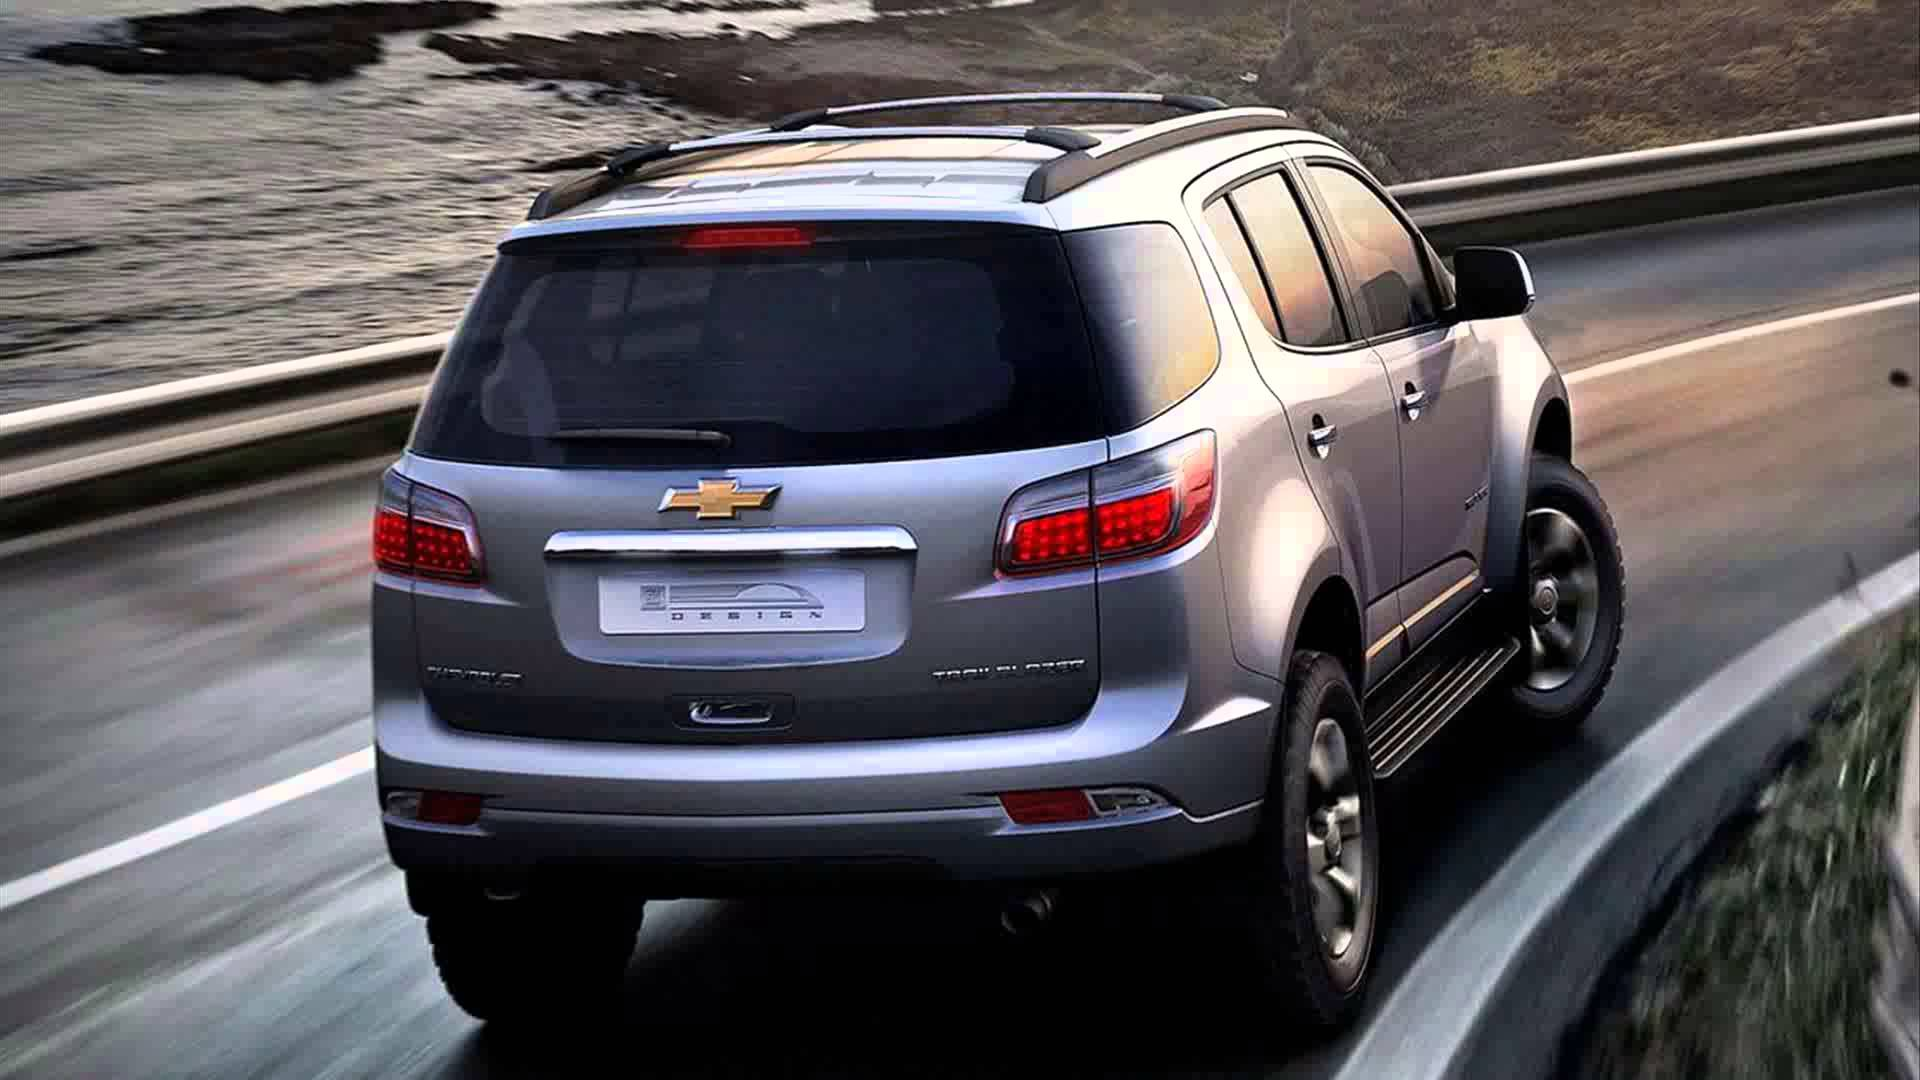 Chevrolet Trailblazer 2015 >> Comparison Jeep Patriot 2015 Vs Chevrolet Trailblazer